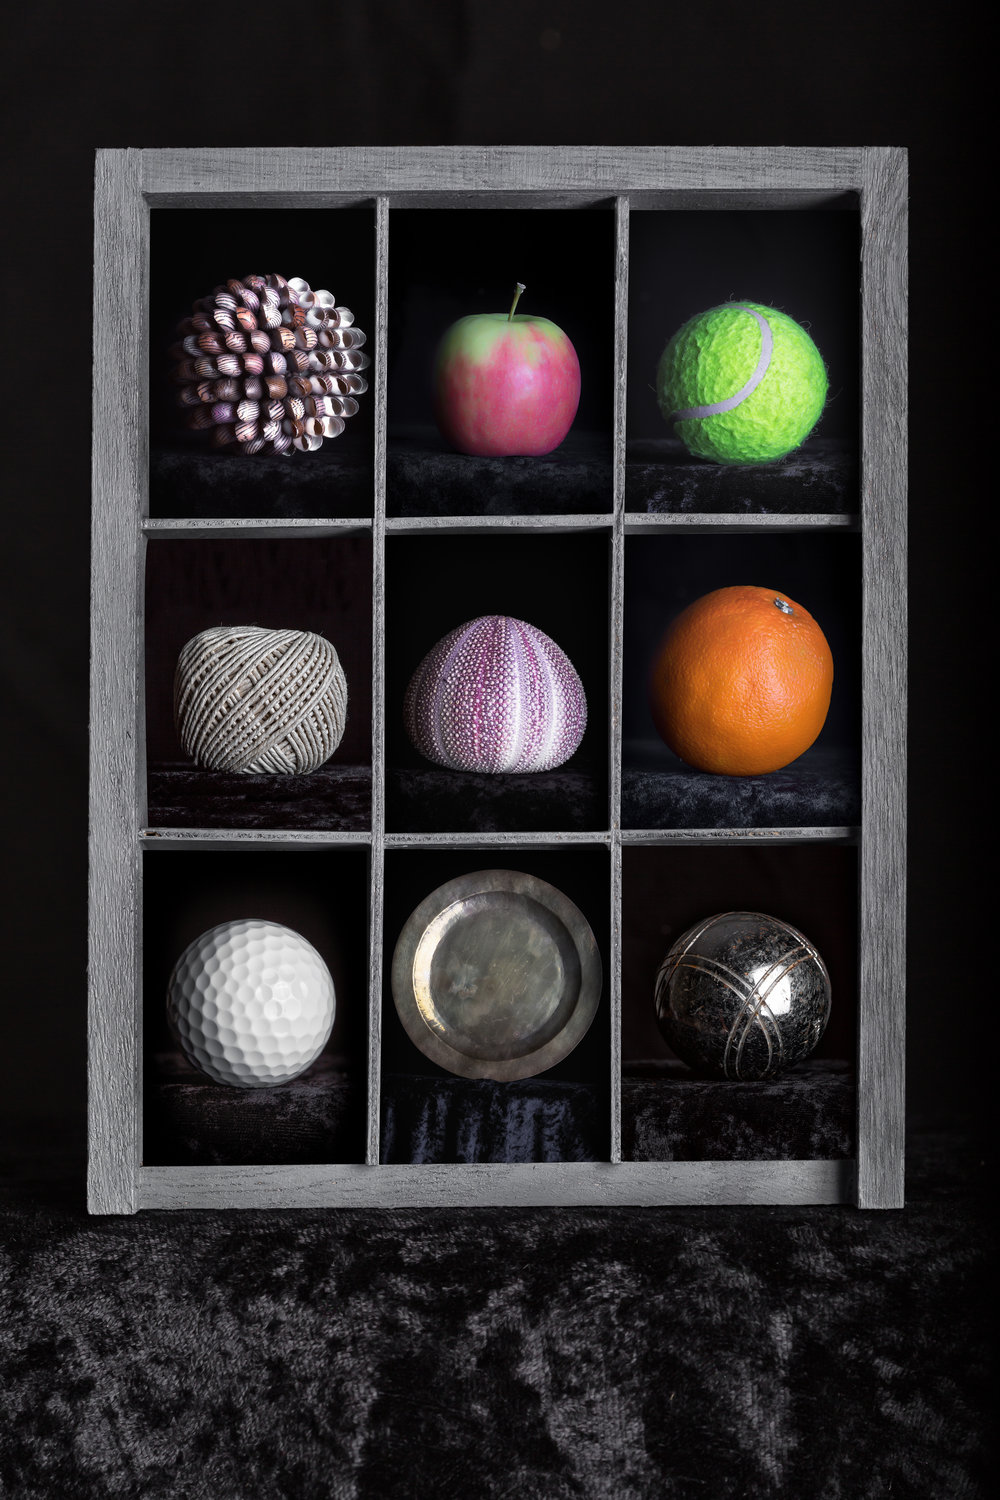 Sphere collections 7 final flickr.jpg